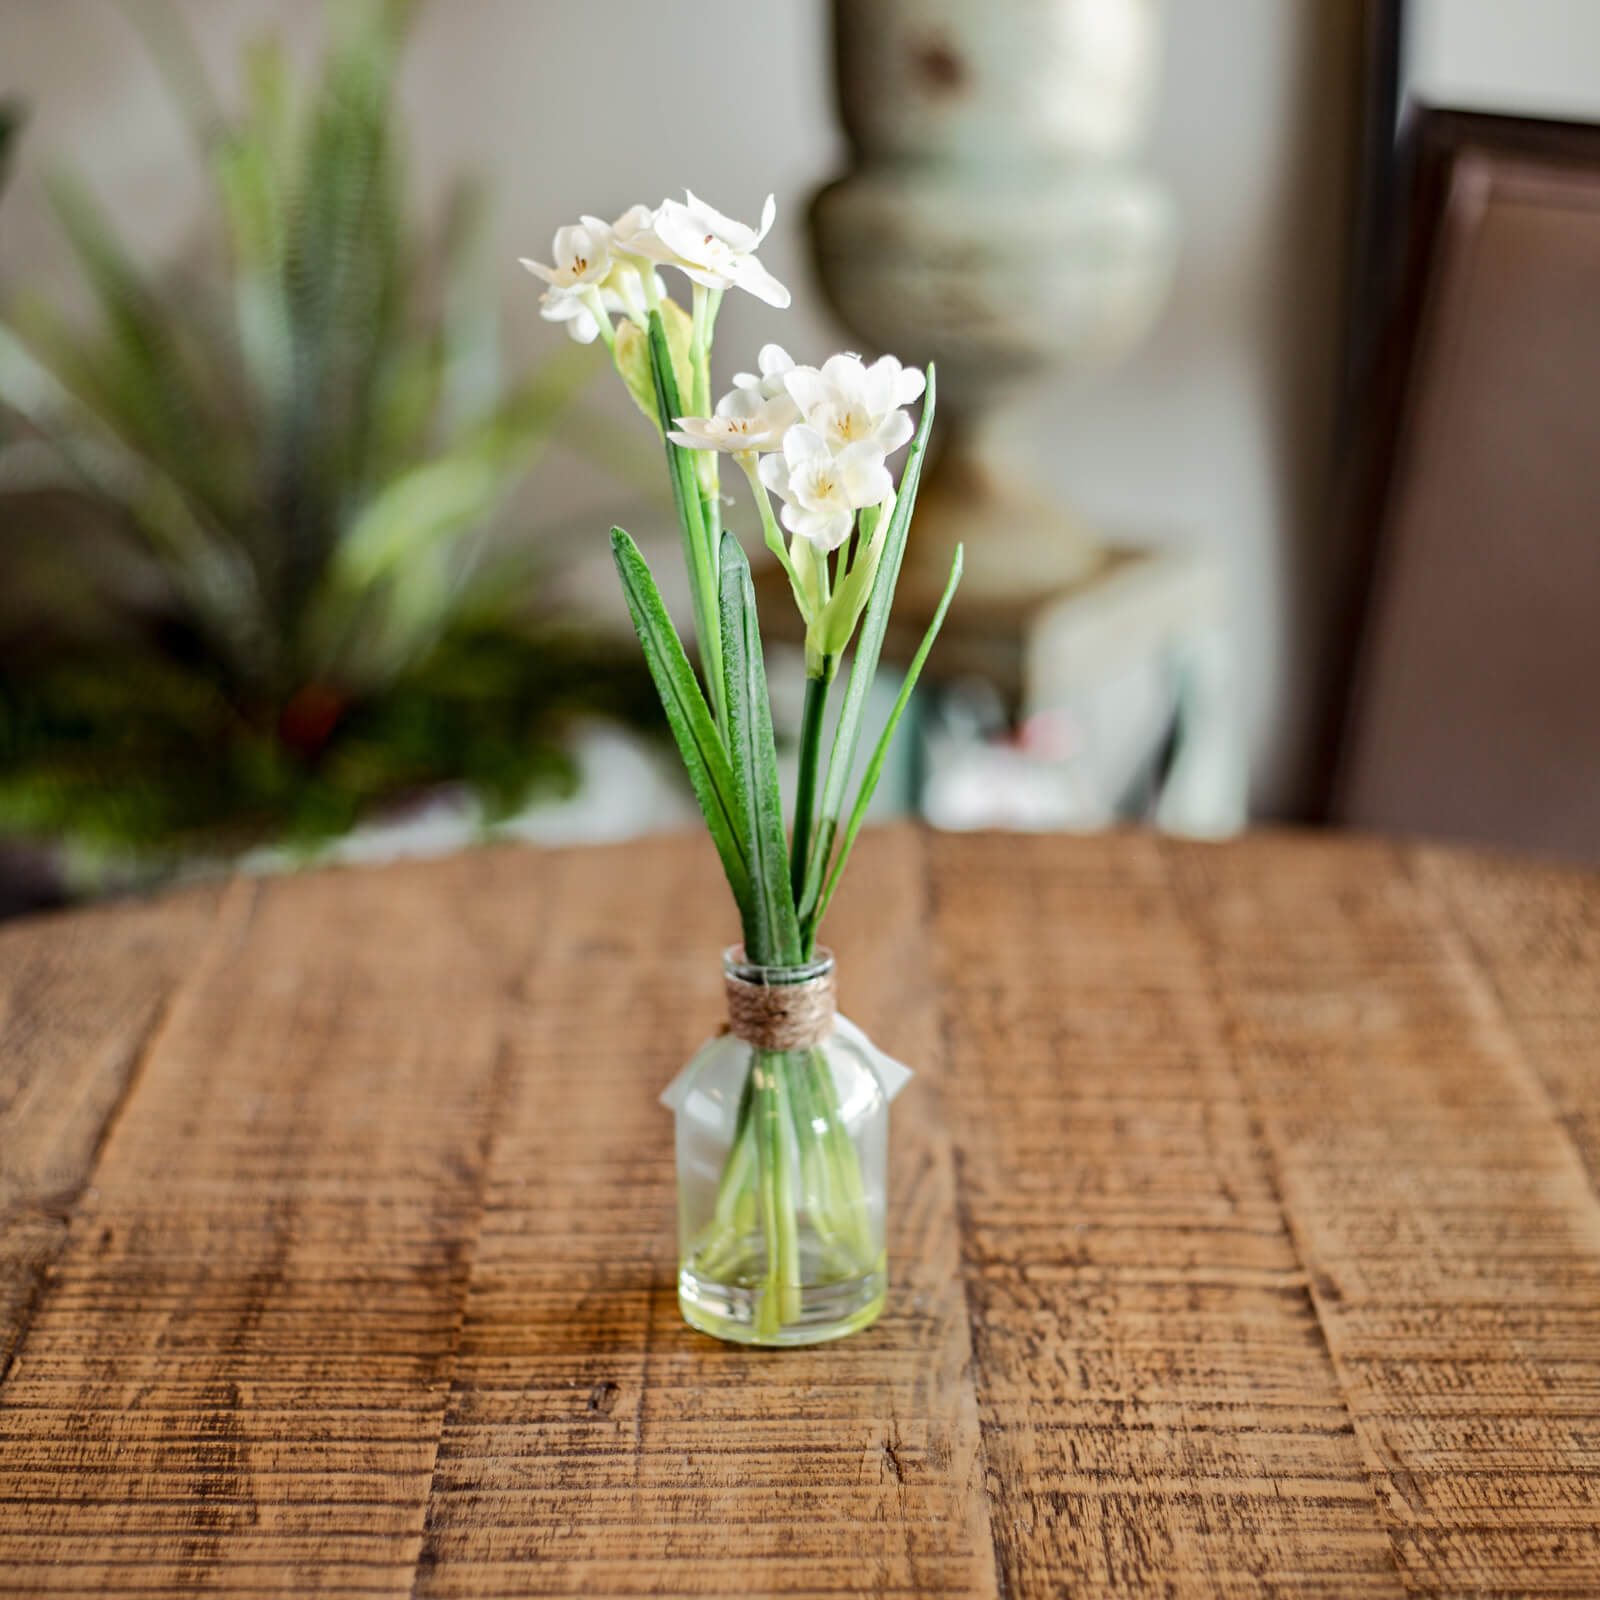 A small, beautiful spray of faux Narcissus in a small clear glass jar with natural twine around the neck. Resting in the sunshine on a table by the window.